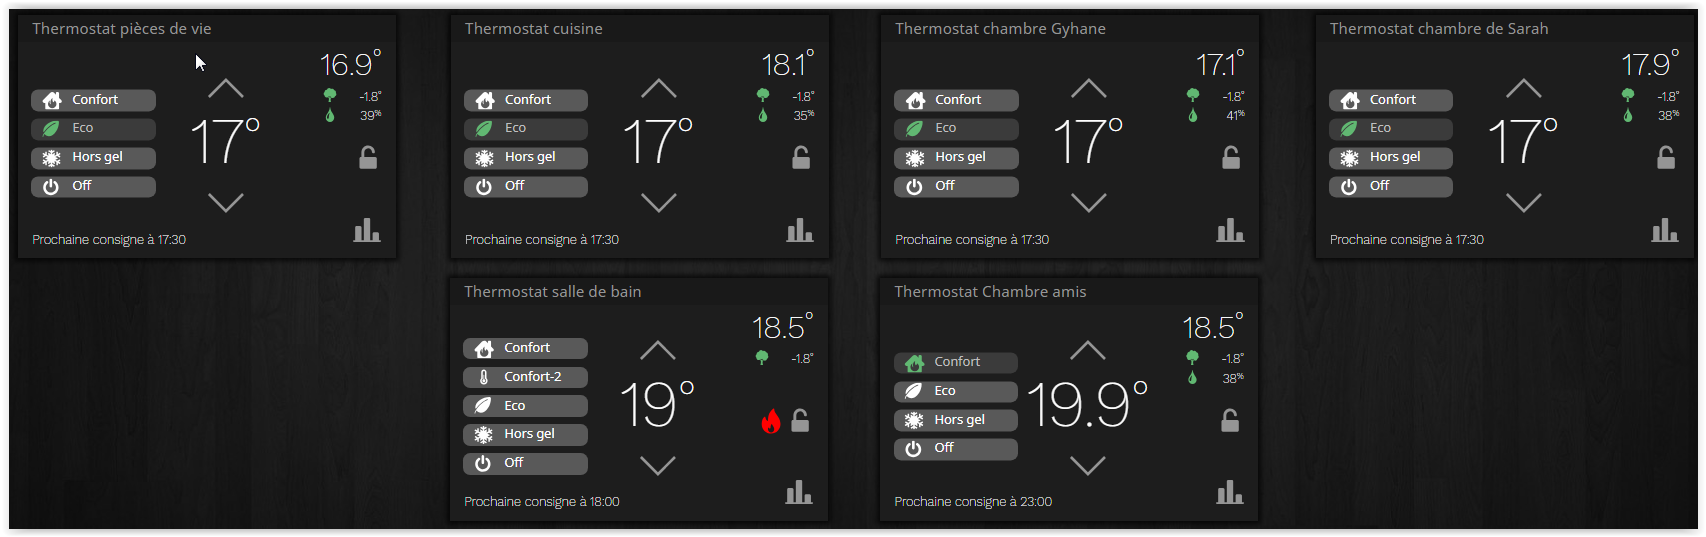 thermostat alternateview1.PNG